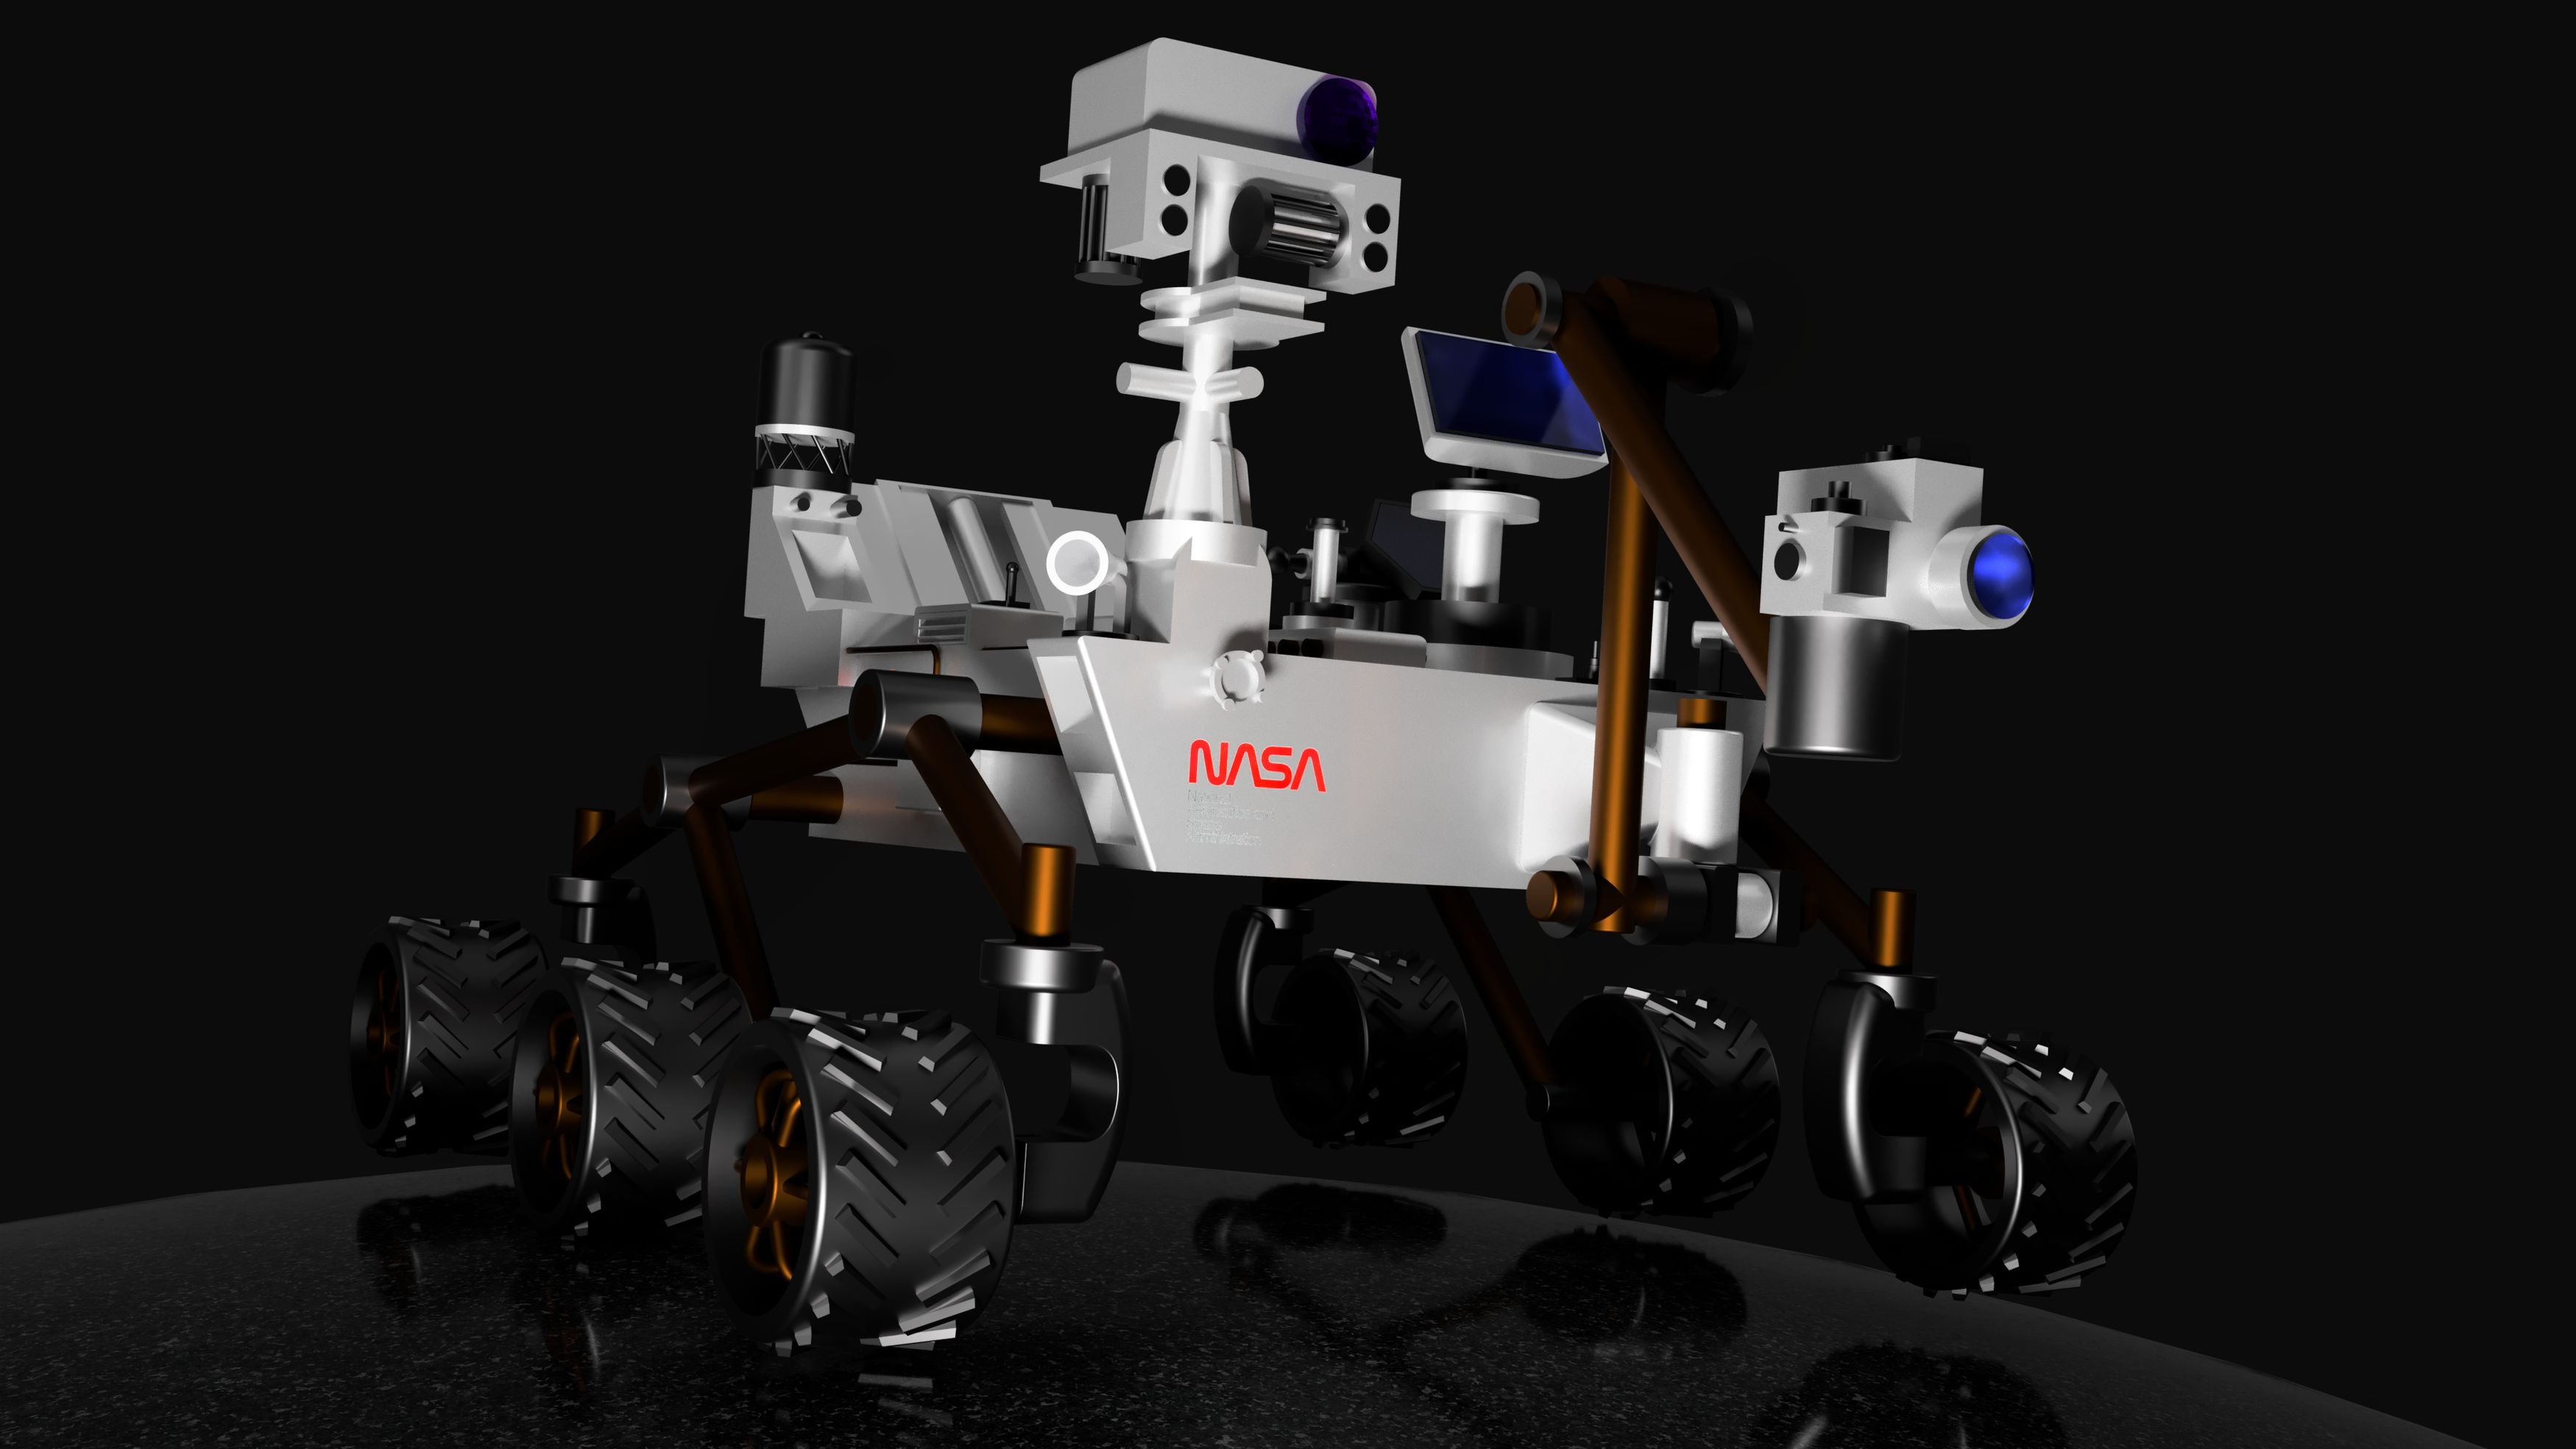 Robot-space-nasa---lcs2020-2020-may-06-10-40-50pm-000-customizedview14160279227lccccc2020l2020-png-3500-3500